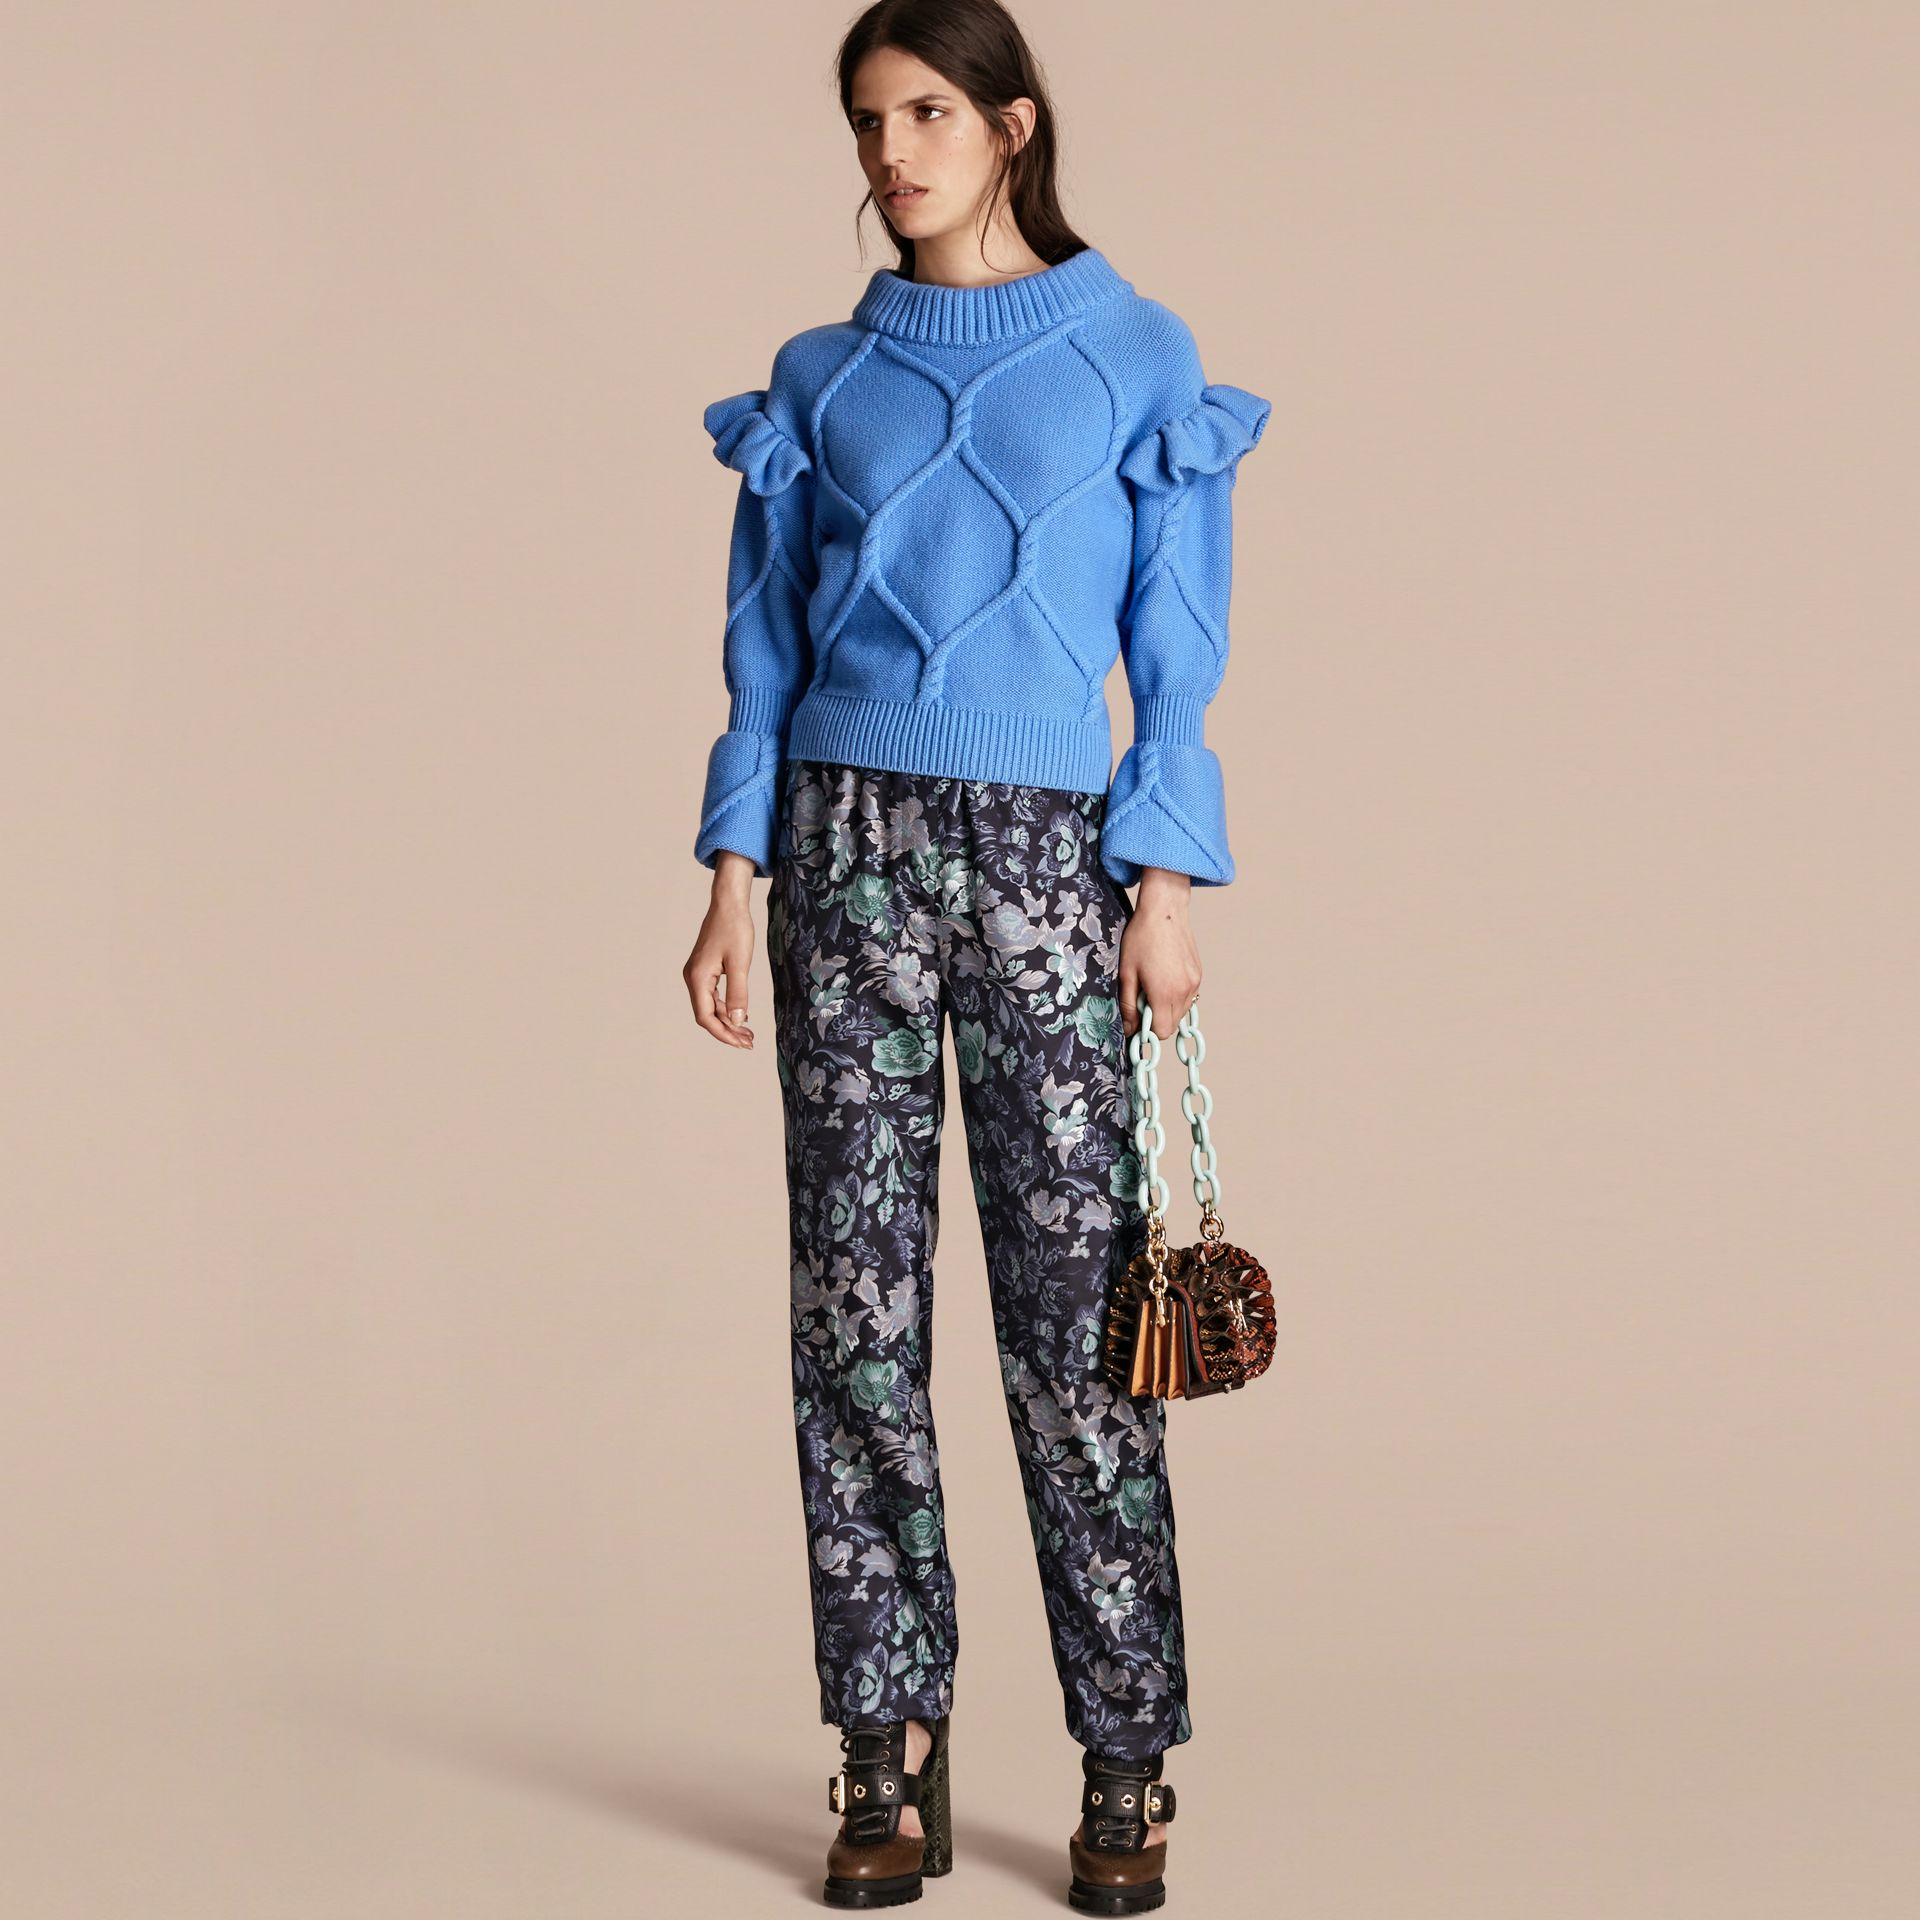 Hydrangia blue Cable Knit Wool Cashmere Sweater with Ruffle Bell Sleeves Hydrangia Blue - gallery image 1